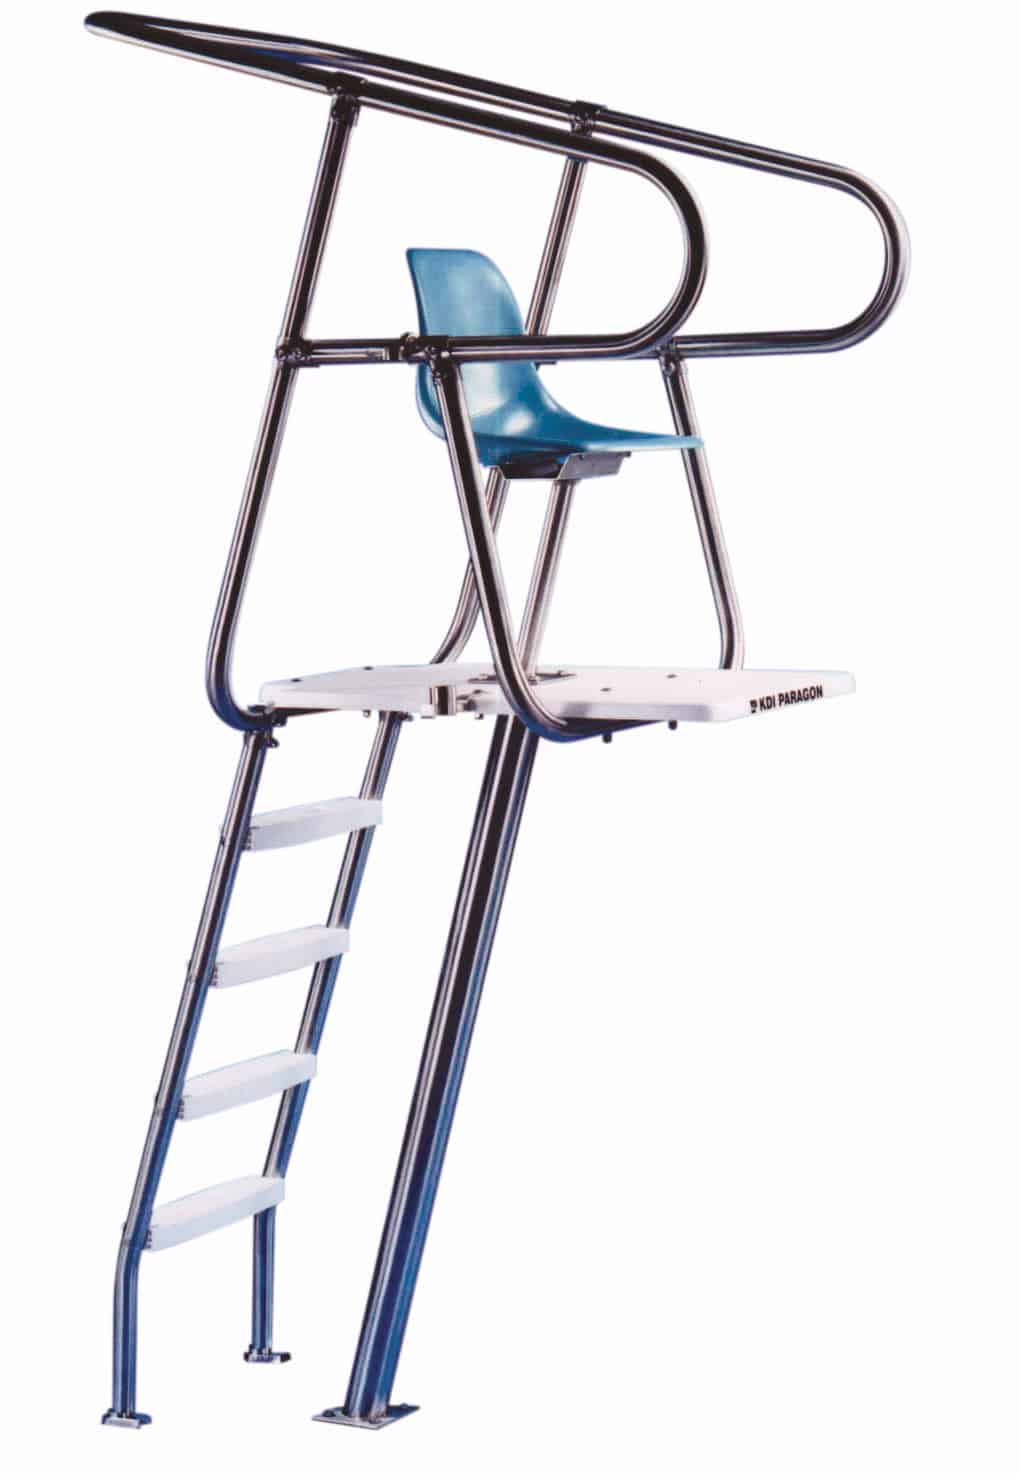 paragon lifeguard chairs stainless steel for hospitals osha chair swimtime